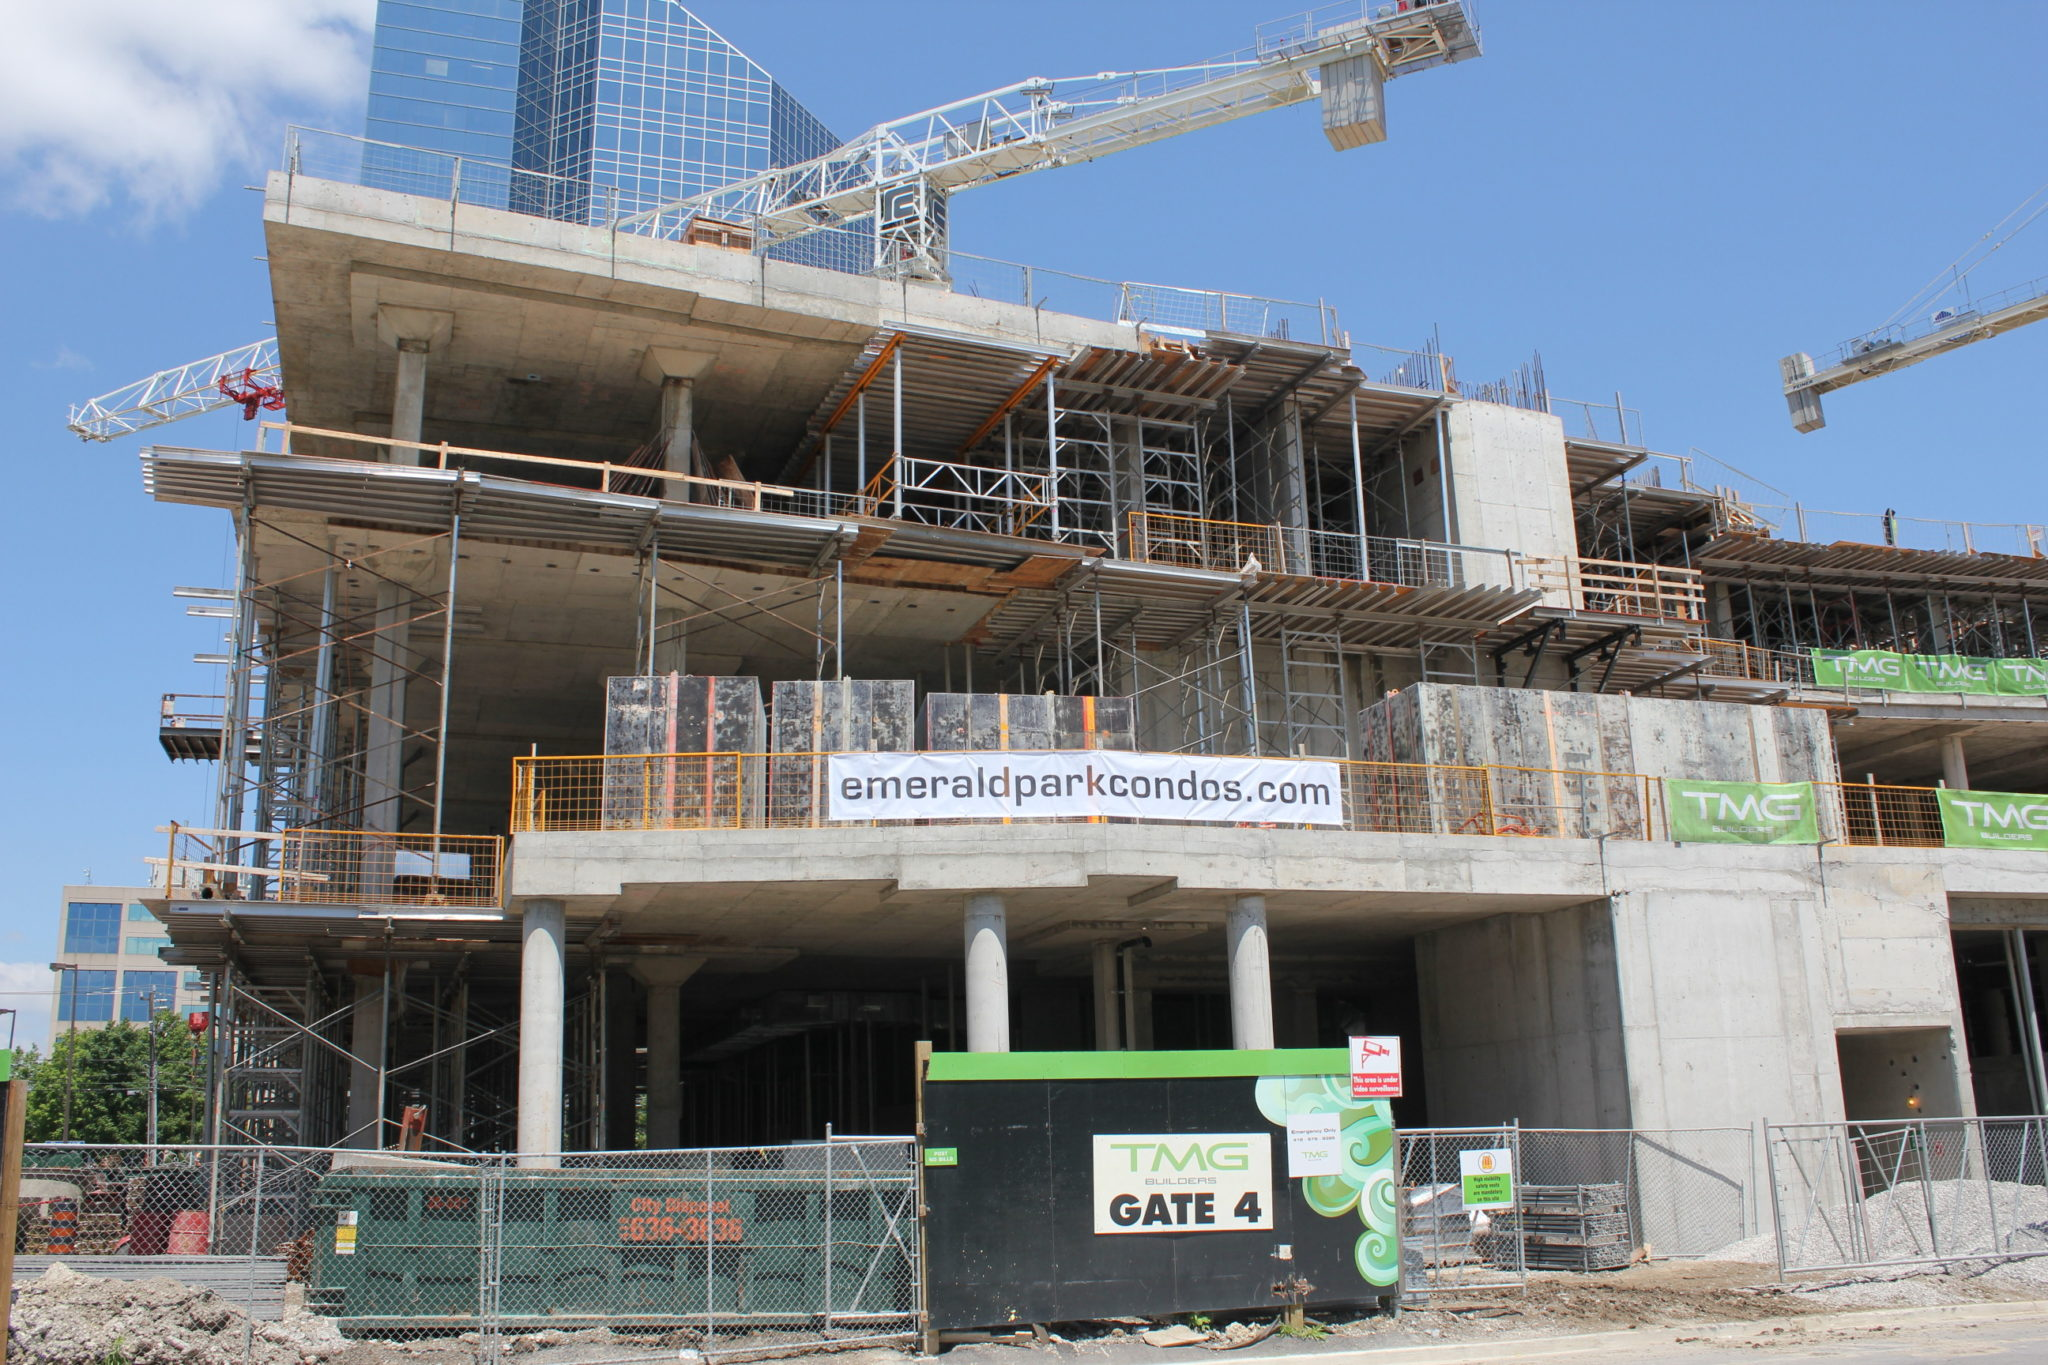 Commercial Real Estate Toronto Construction